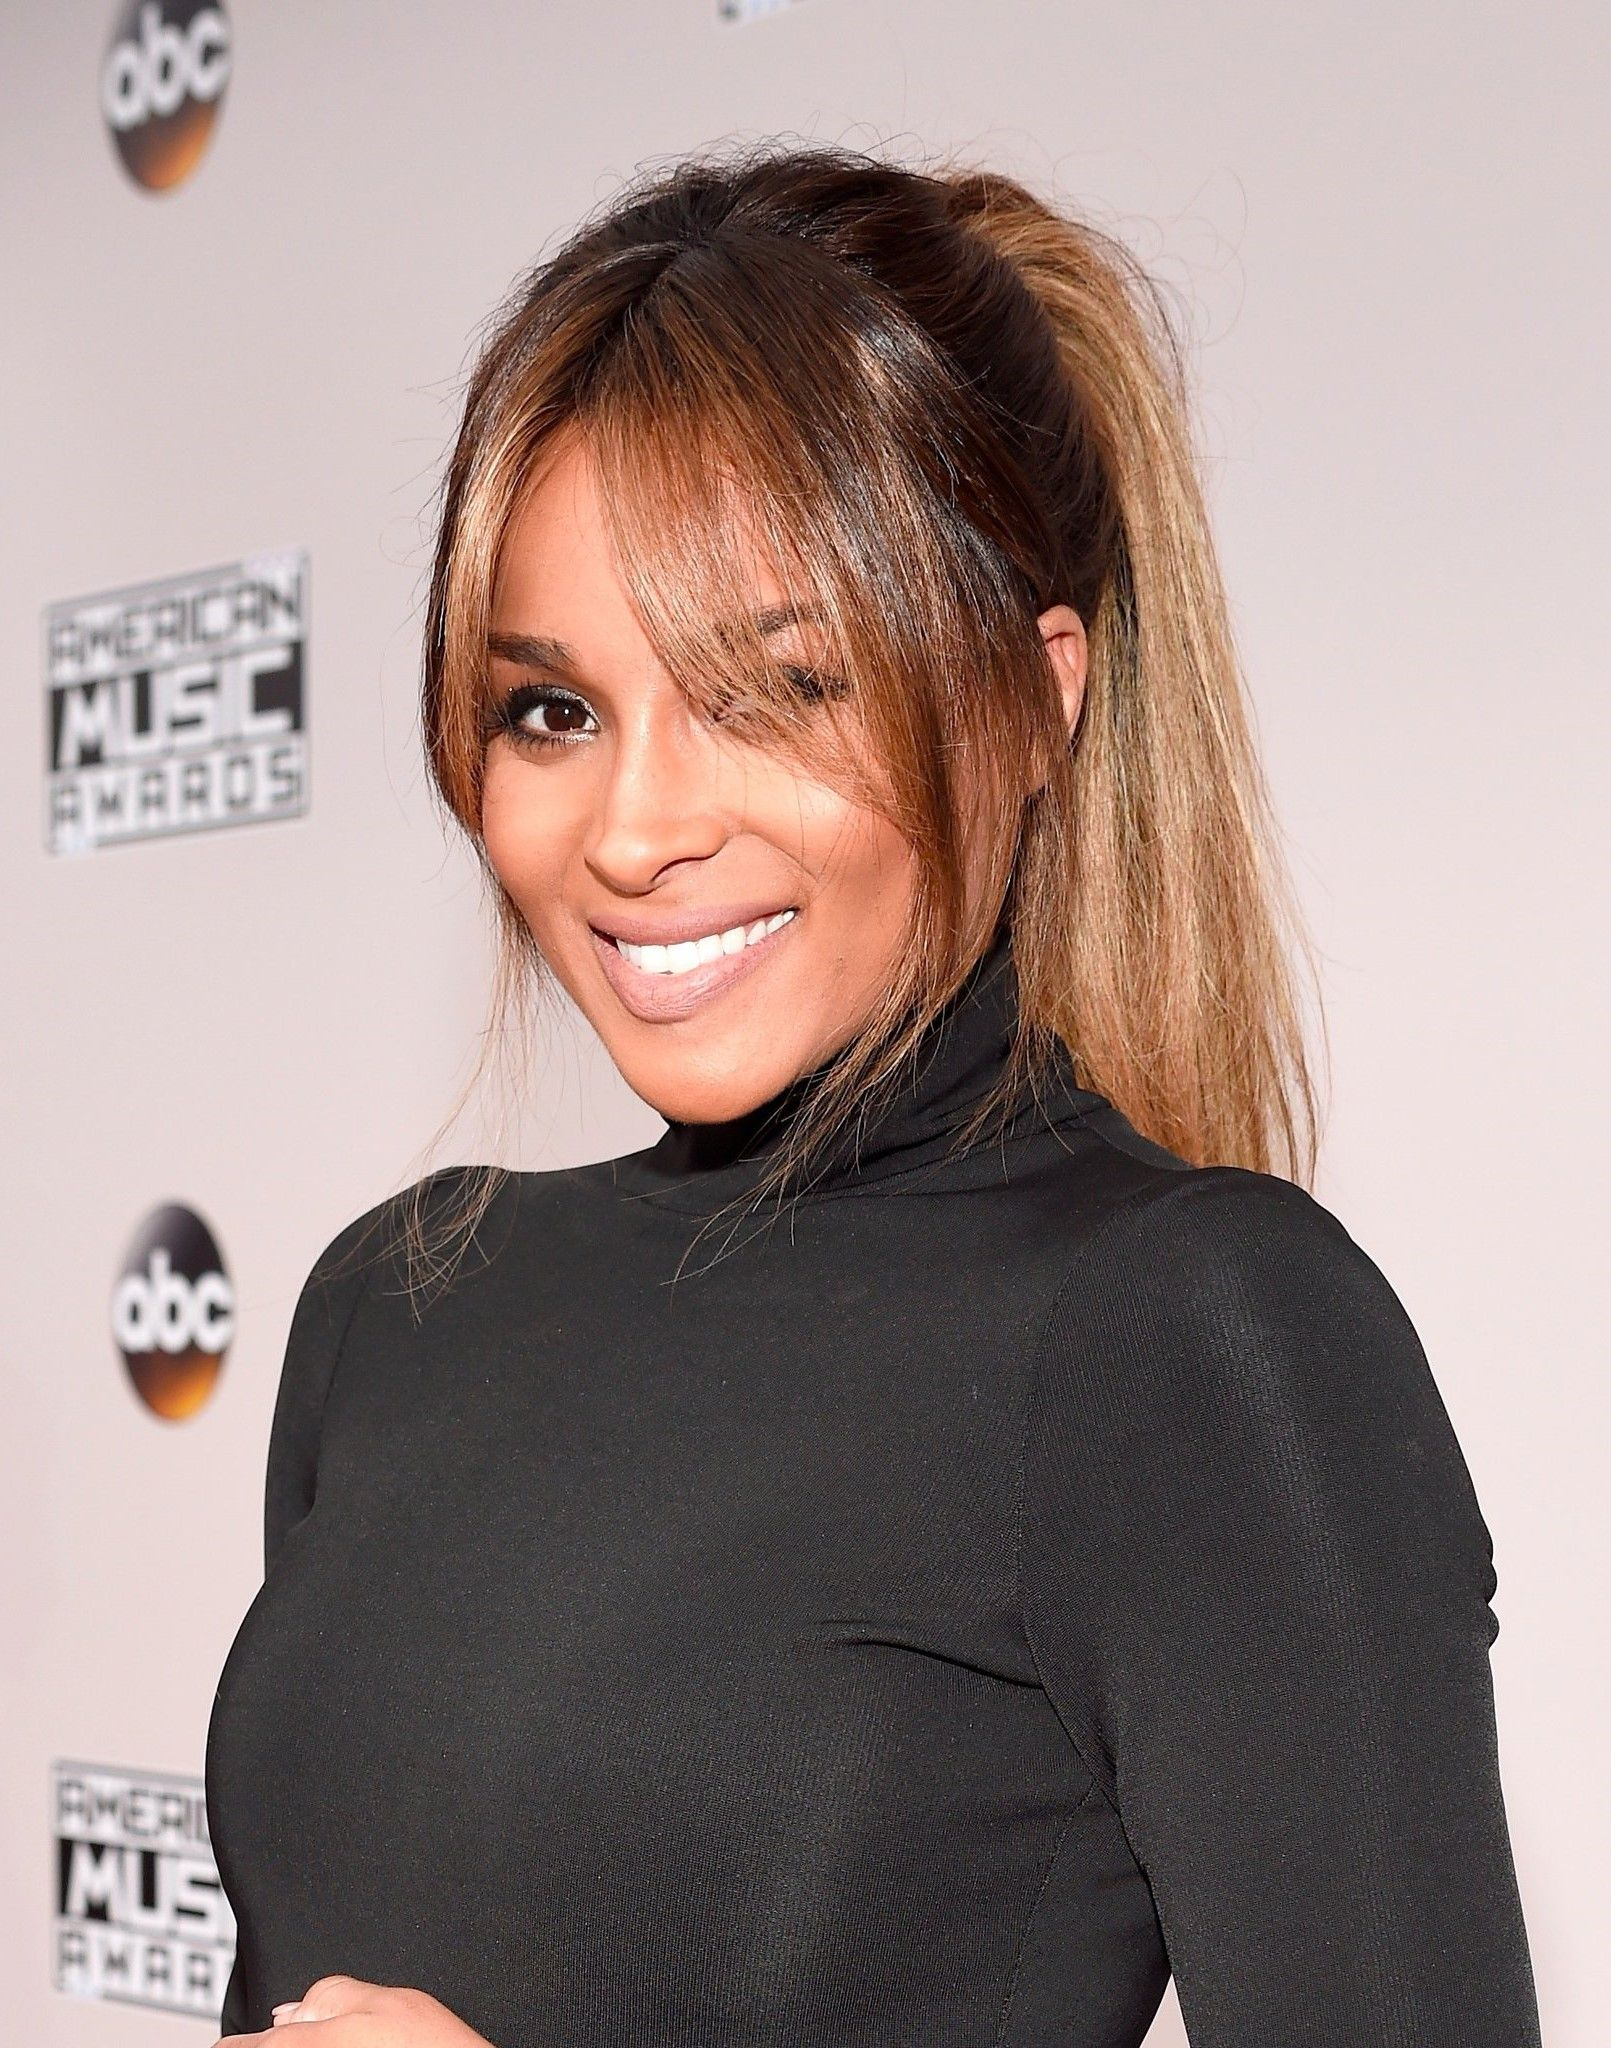 Ciara Hairstyles Unique Top 5 Ciara Hairstyles To Try Today — Famous Beautiful Black Women